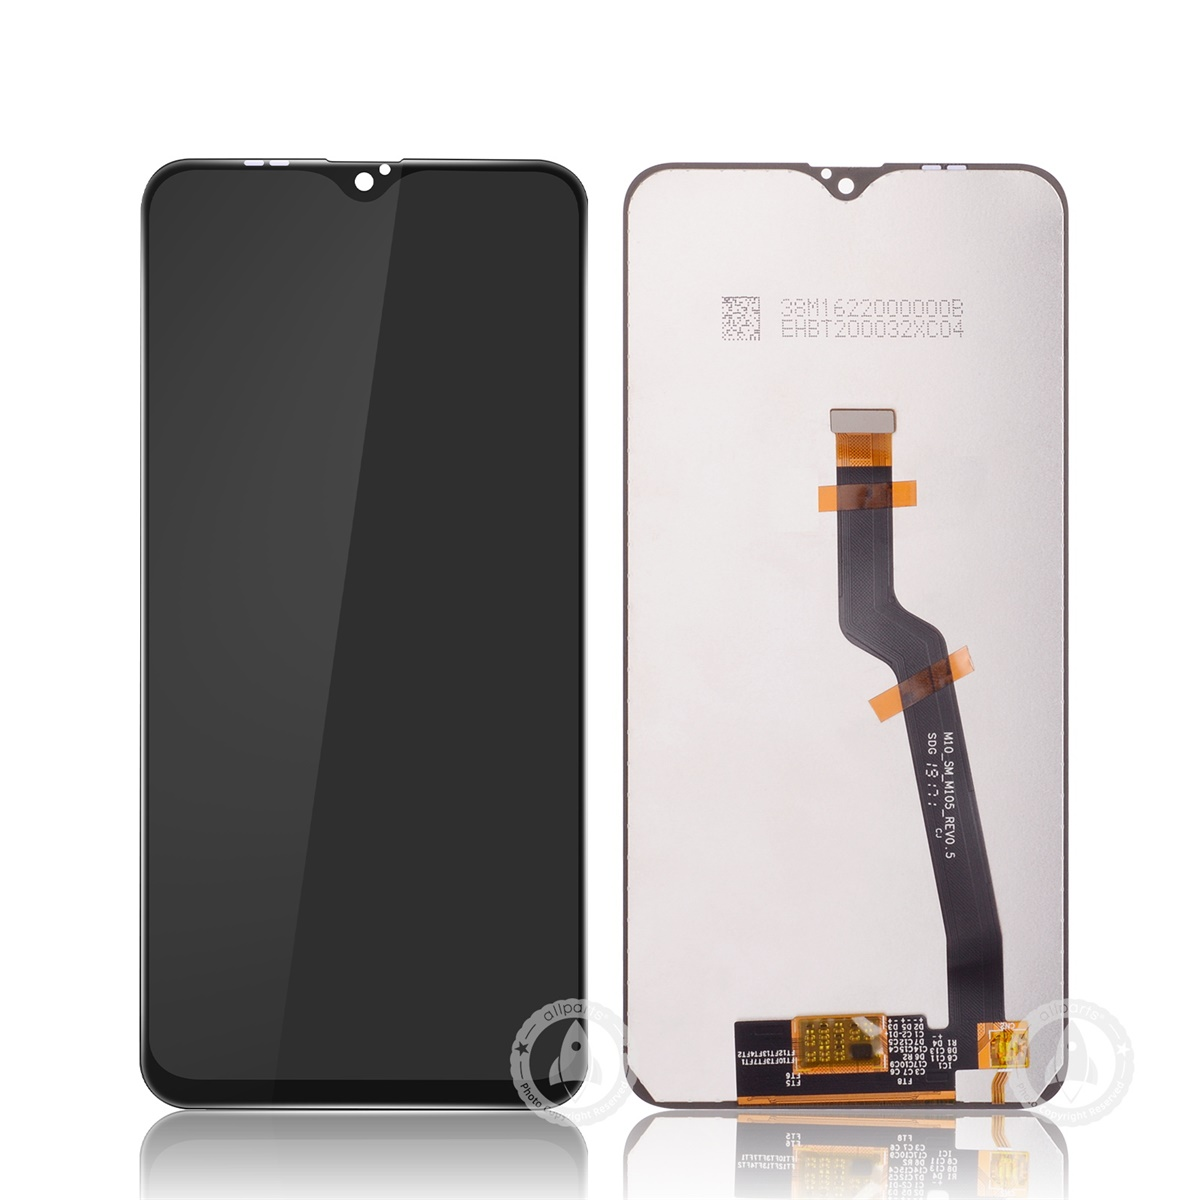 Replacement Replacement Module For <font><b>Samsung</b></font> <font><b>A10</b></font> Display AMOLED Replacement <font><b>Lcd</b></font> Touch <font><b>Screen</b></font> For <font><b>Samsung</b></font> <font><b>A10</b></font> image